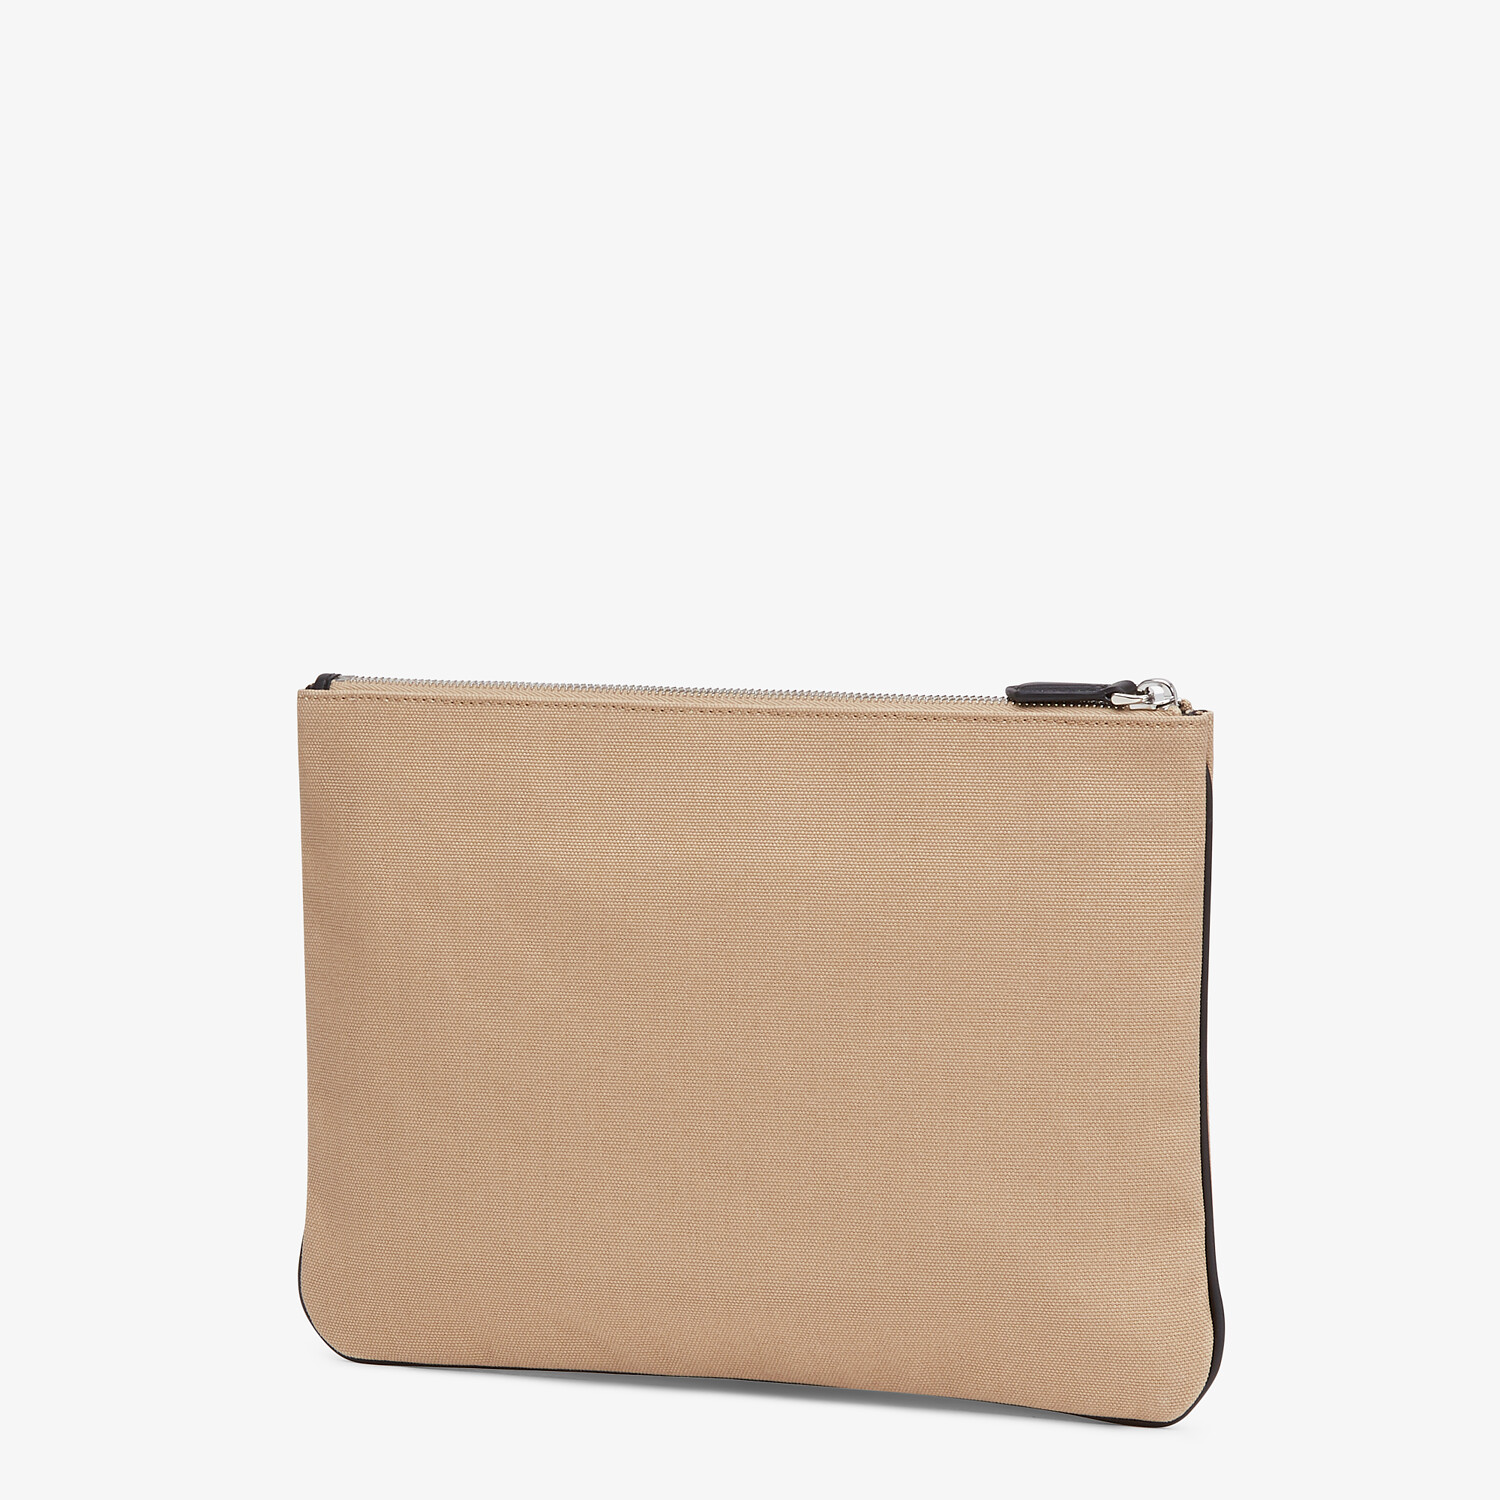 FENDI POUCH - Beige canvas pouch - view 2 detail